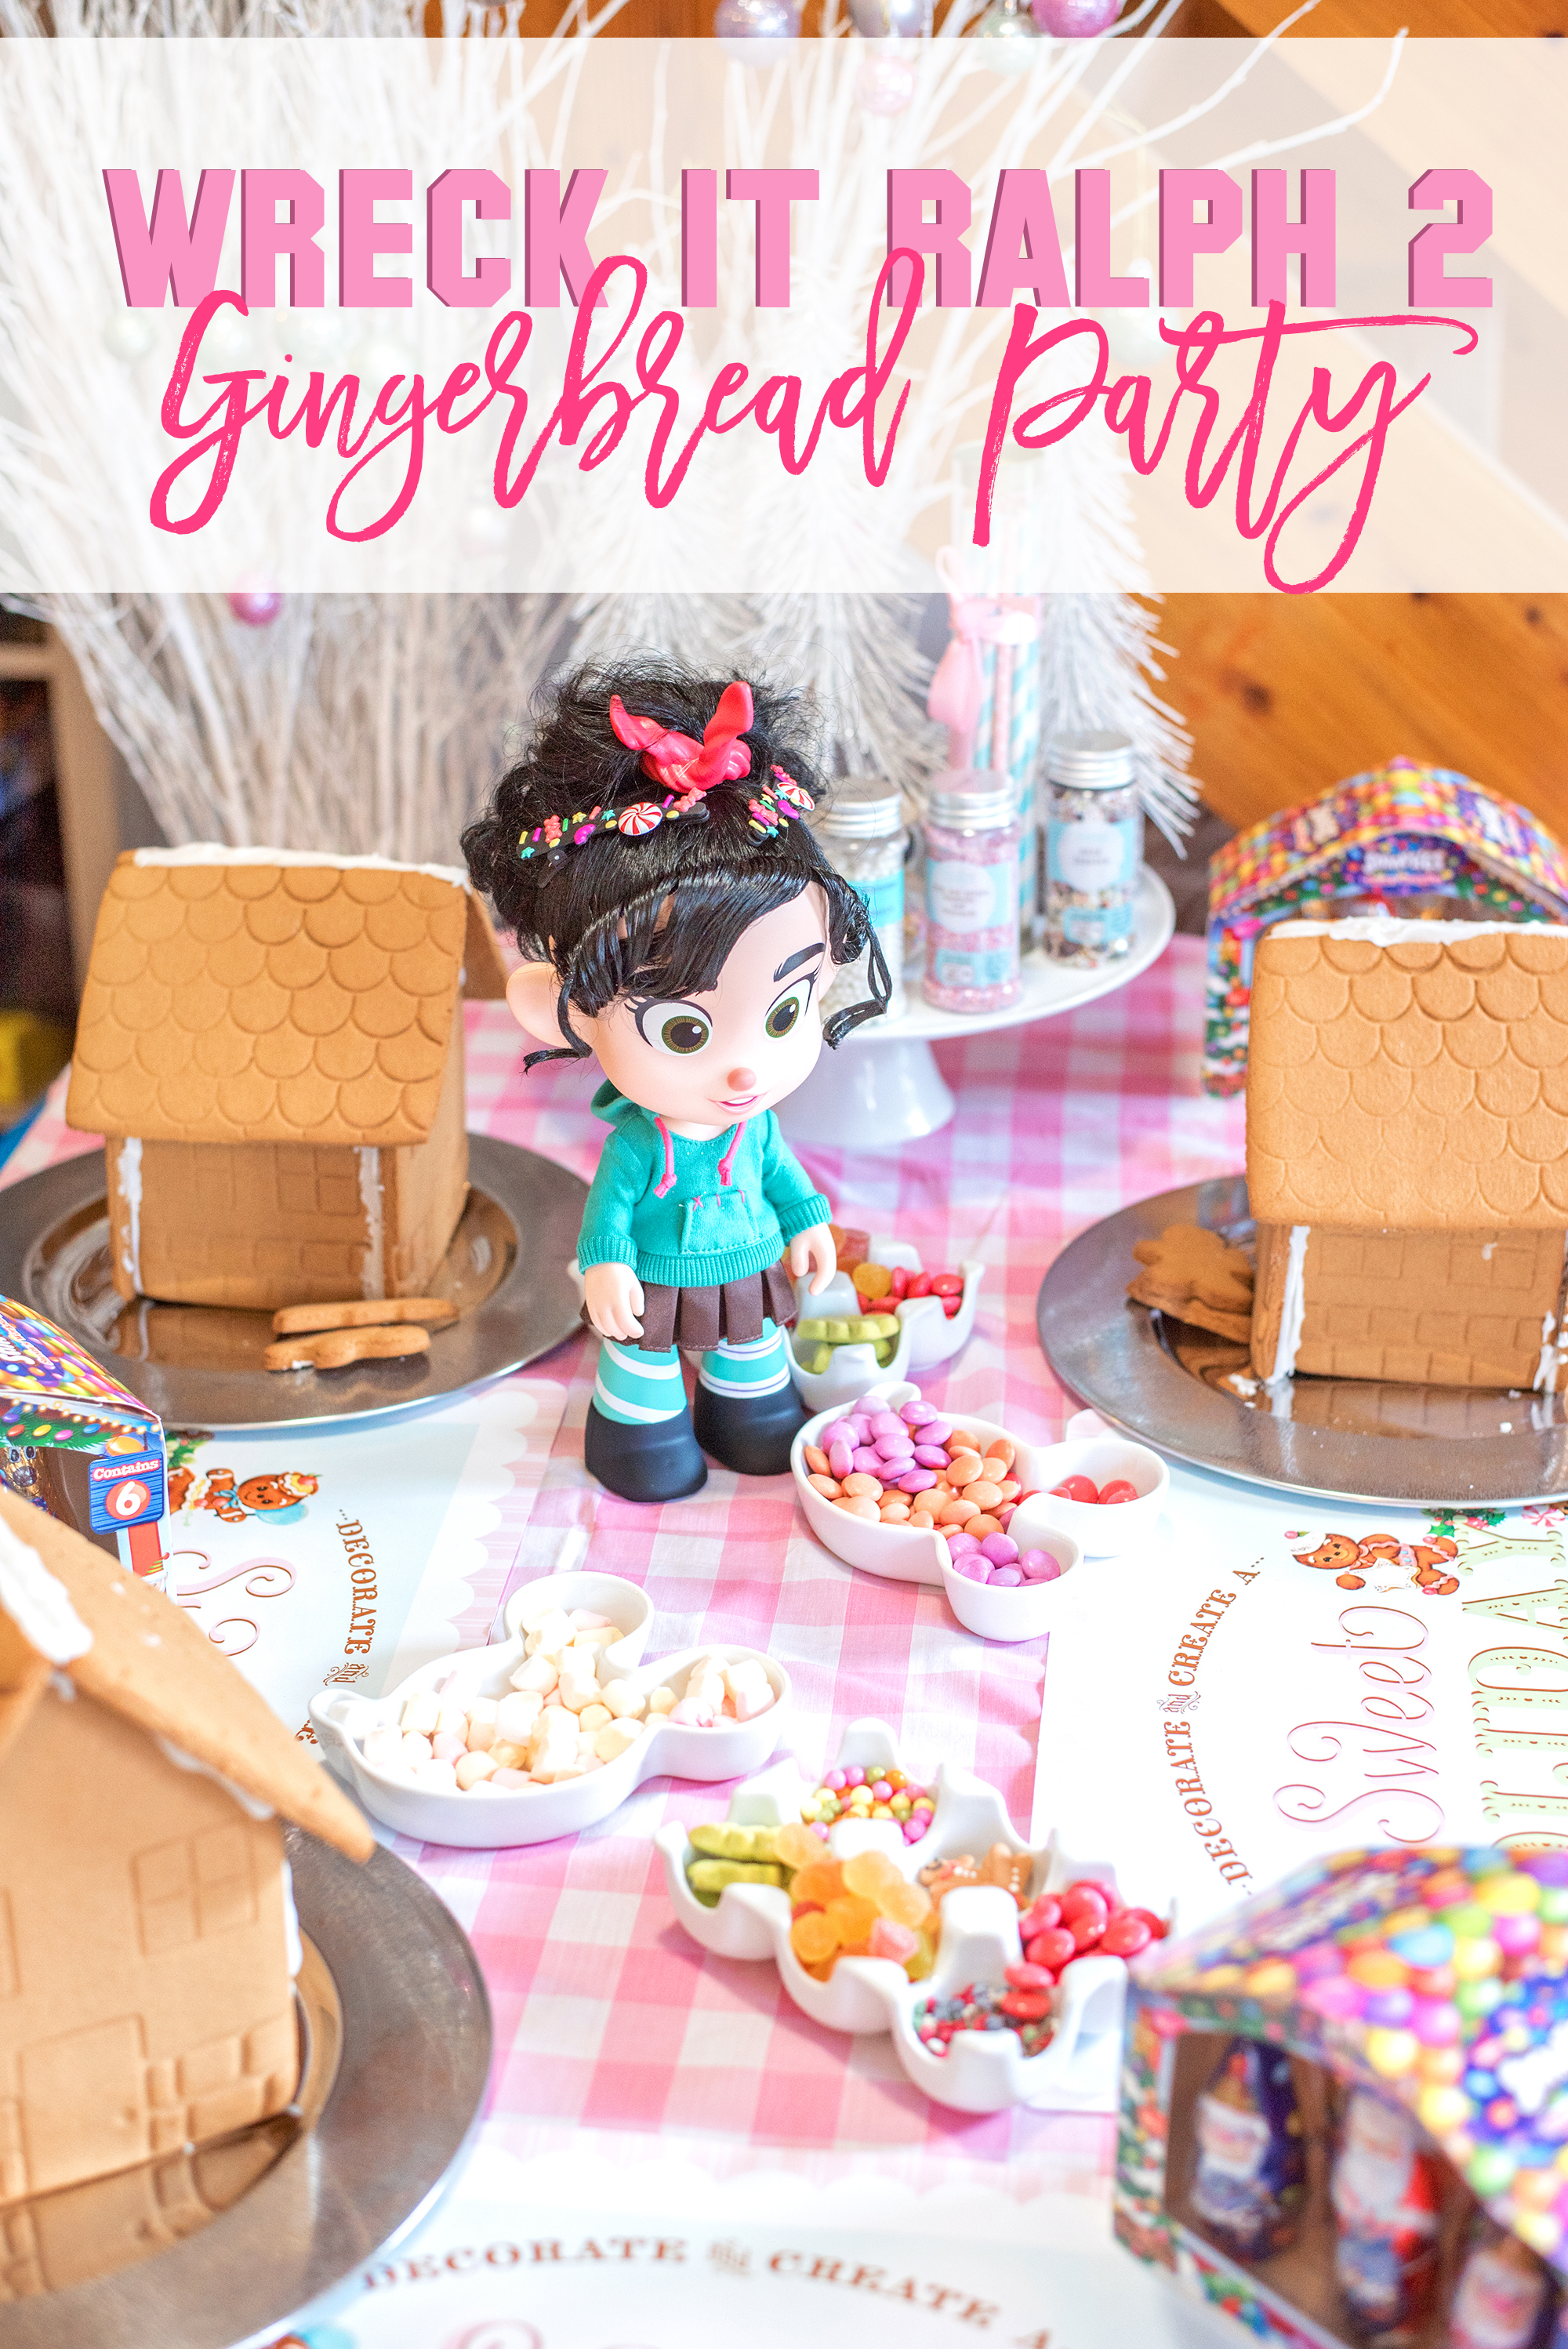 Wreck-It Ralph 2 Gingerbread Party ShopDisney